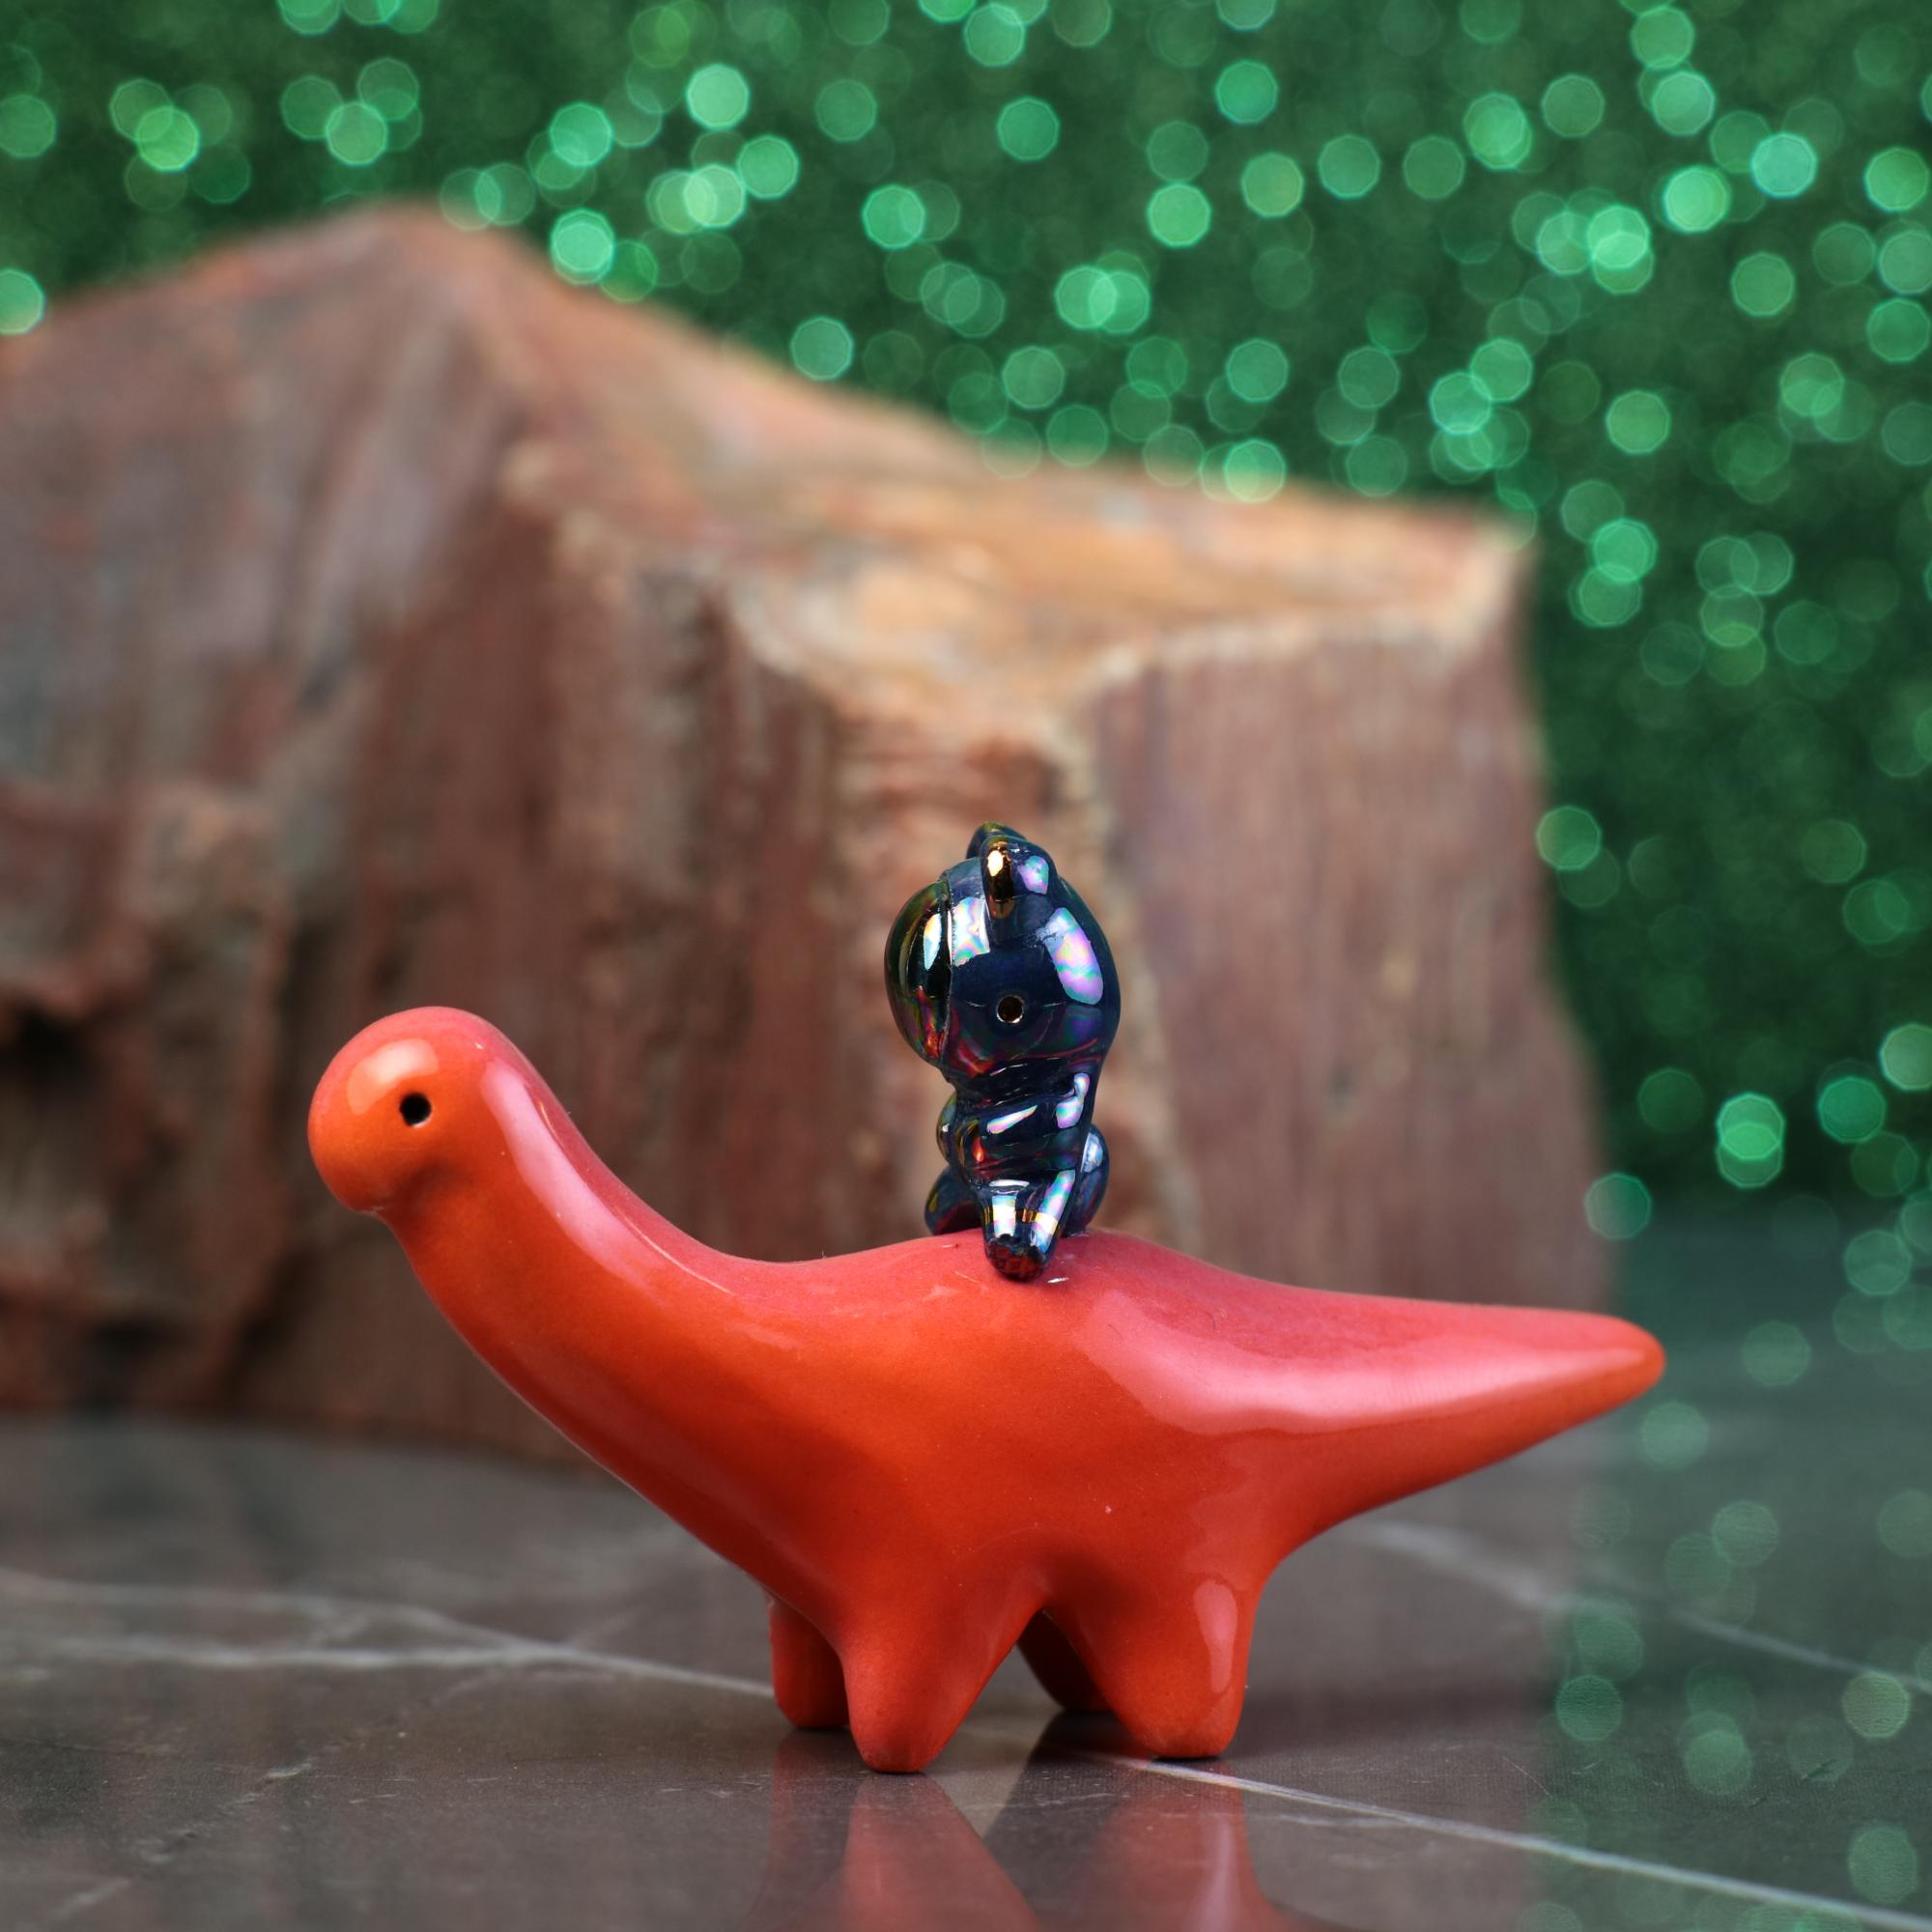 Rainbow Bearnaut Riding Dinosaur Figurine